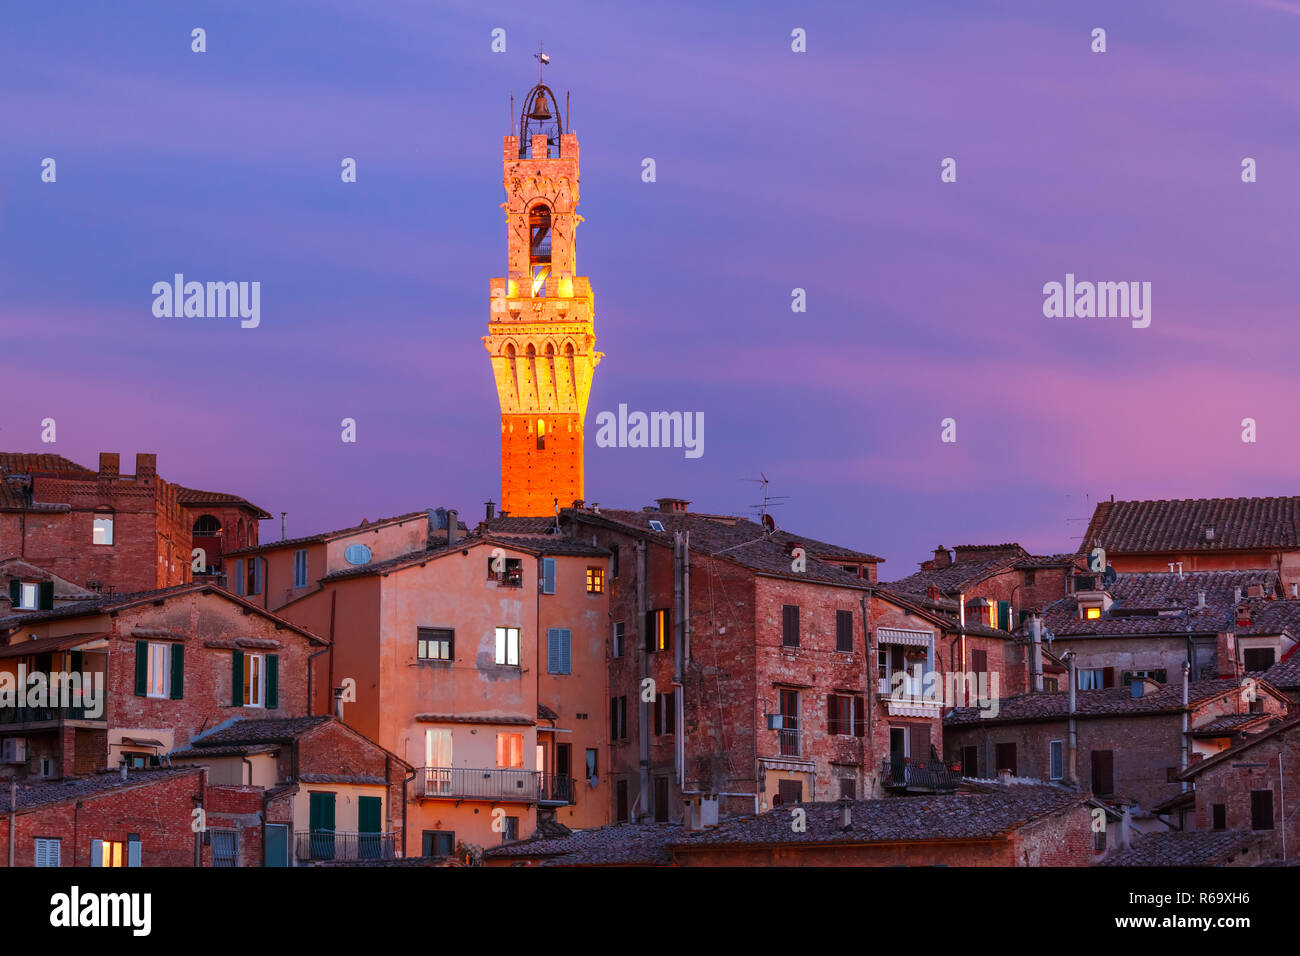 Mangia Tower at gorgeous sunset in Siena, Italy Stock Photo